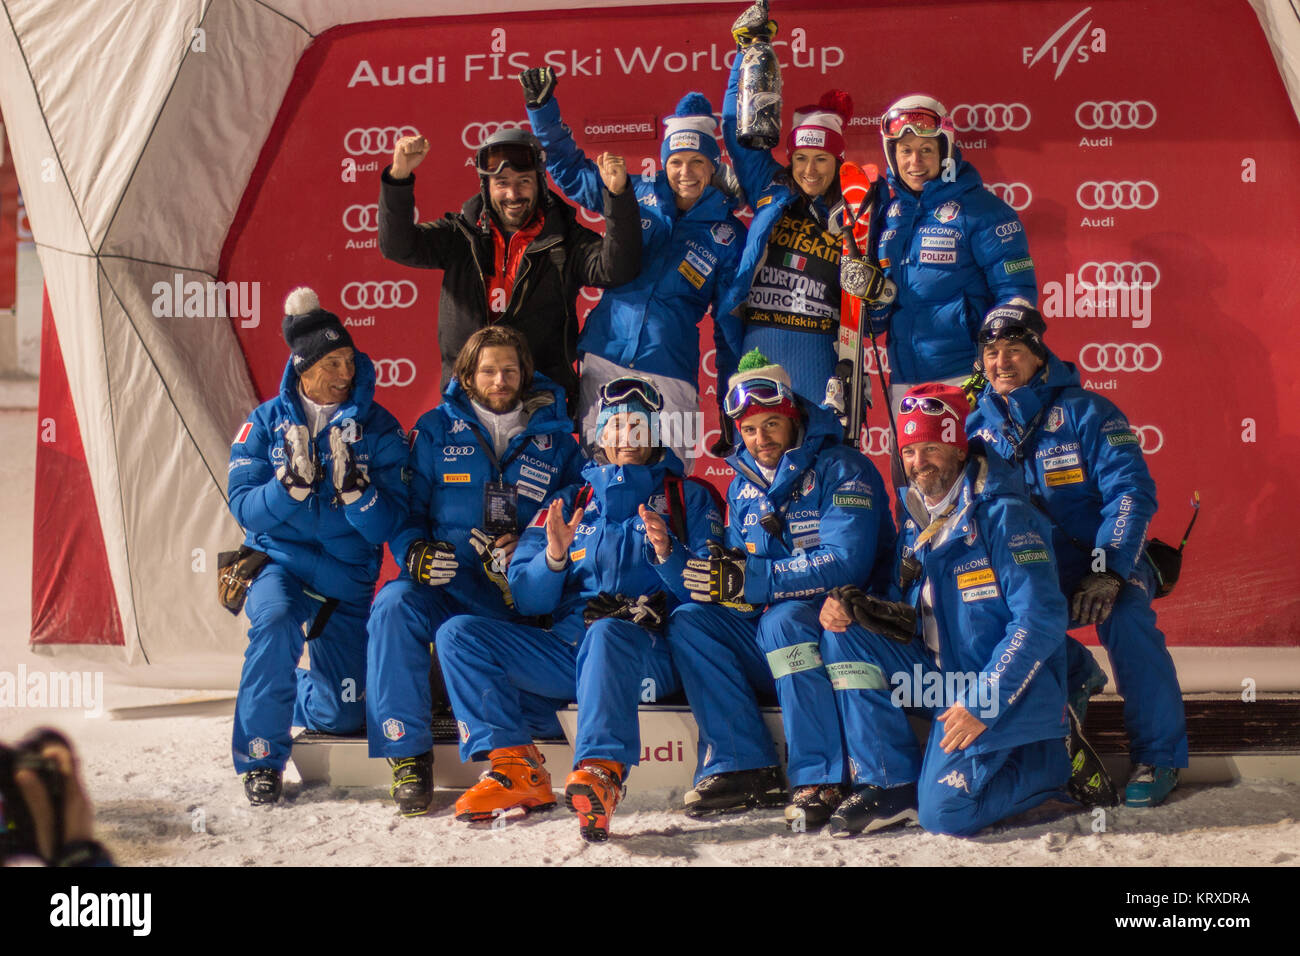 Italian Ski Team happy after the great podium results from Irene Curtoni and Manuela Moelgg in Courchevel Giant - Stock Image